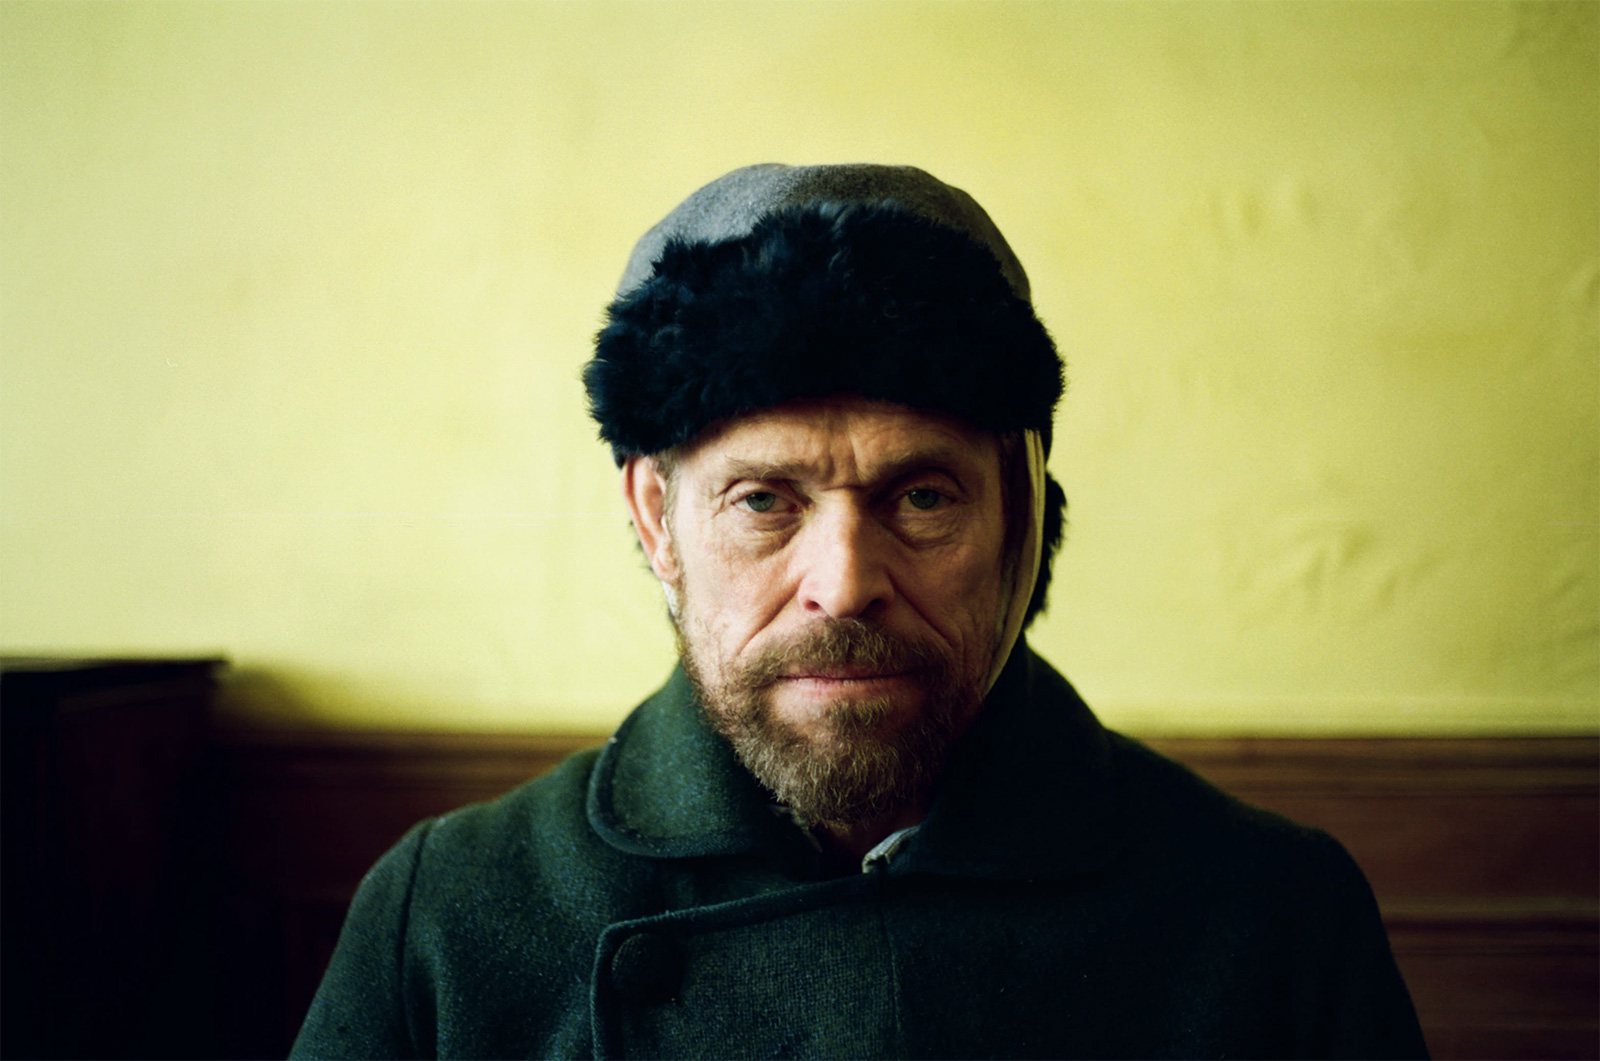 Willem Defoe in 'At Eternity's Gate'. Credit: CBS Films